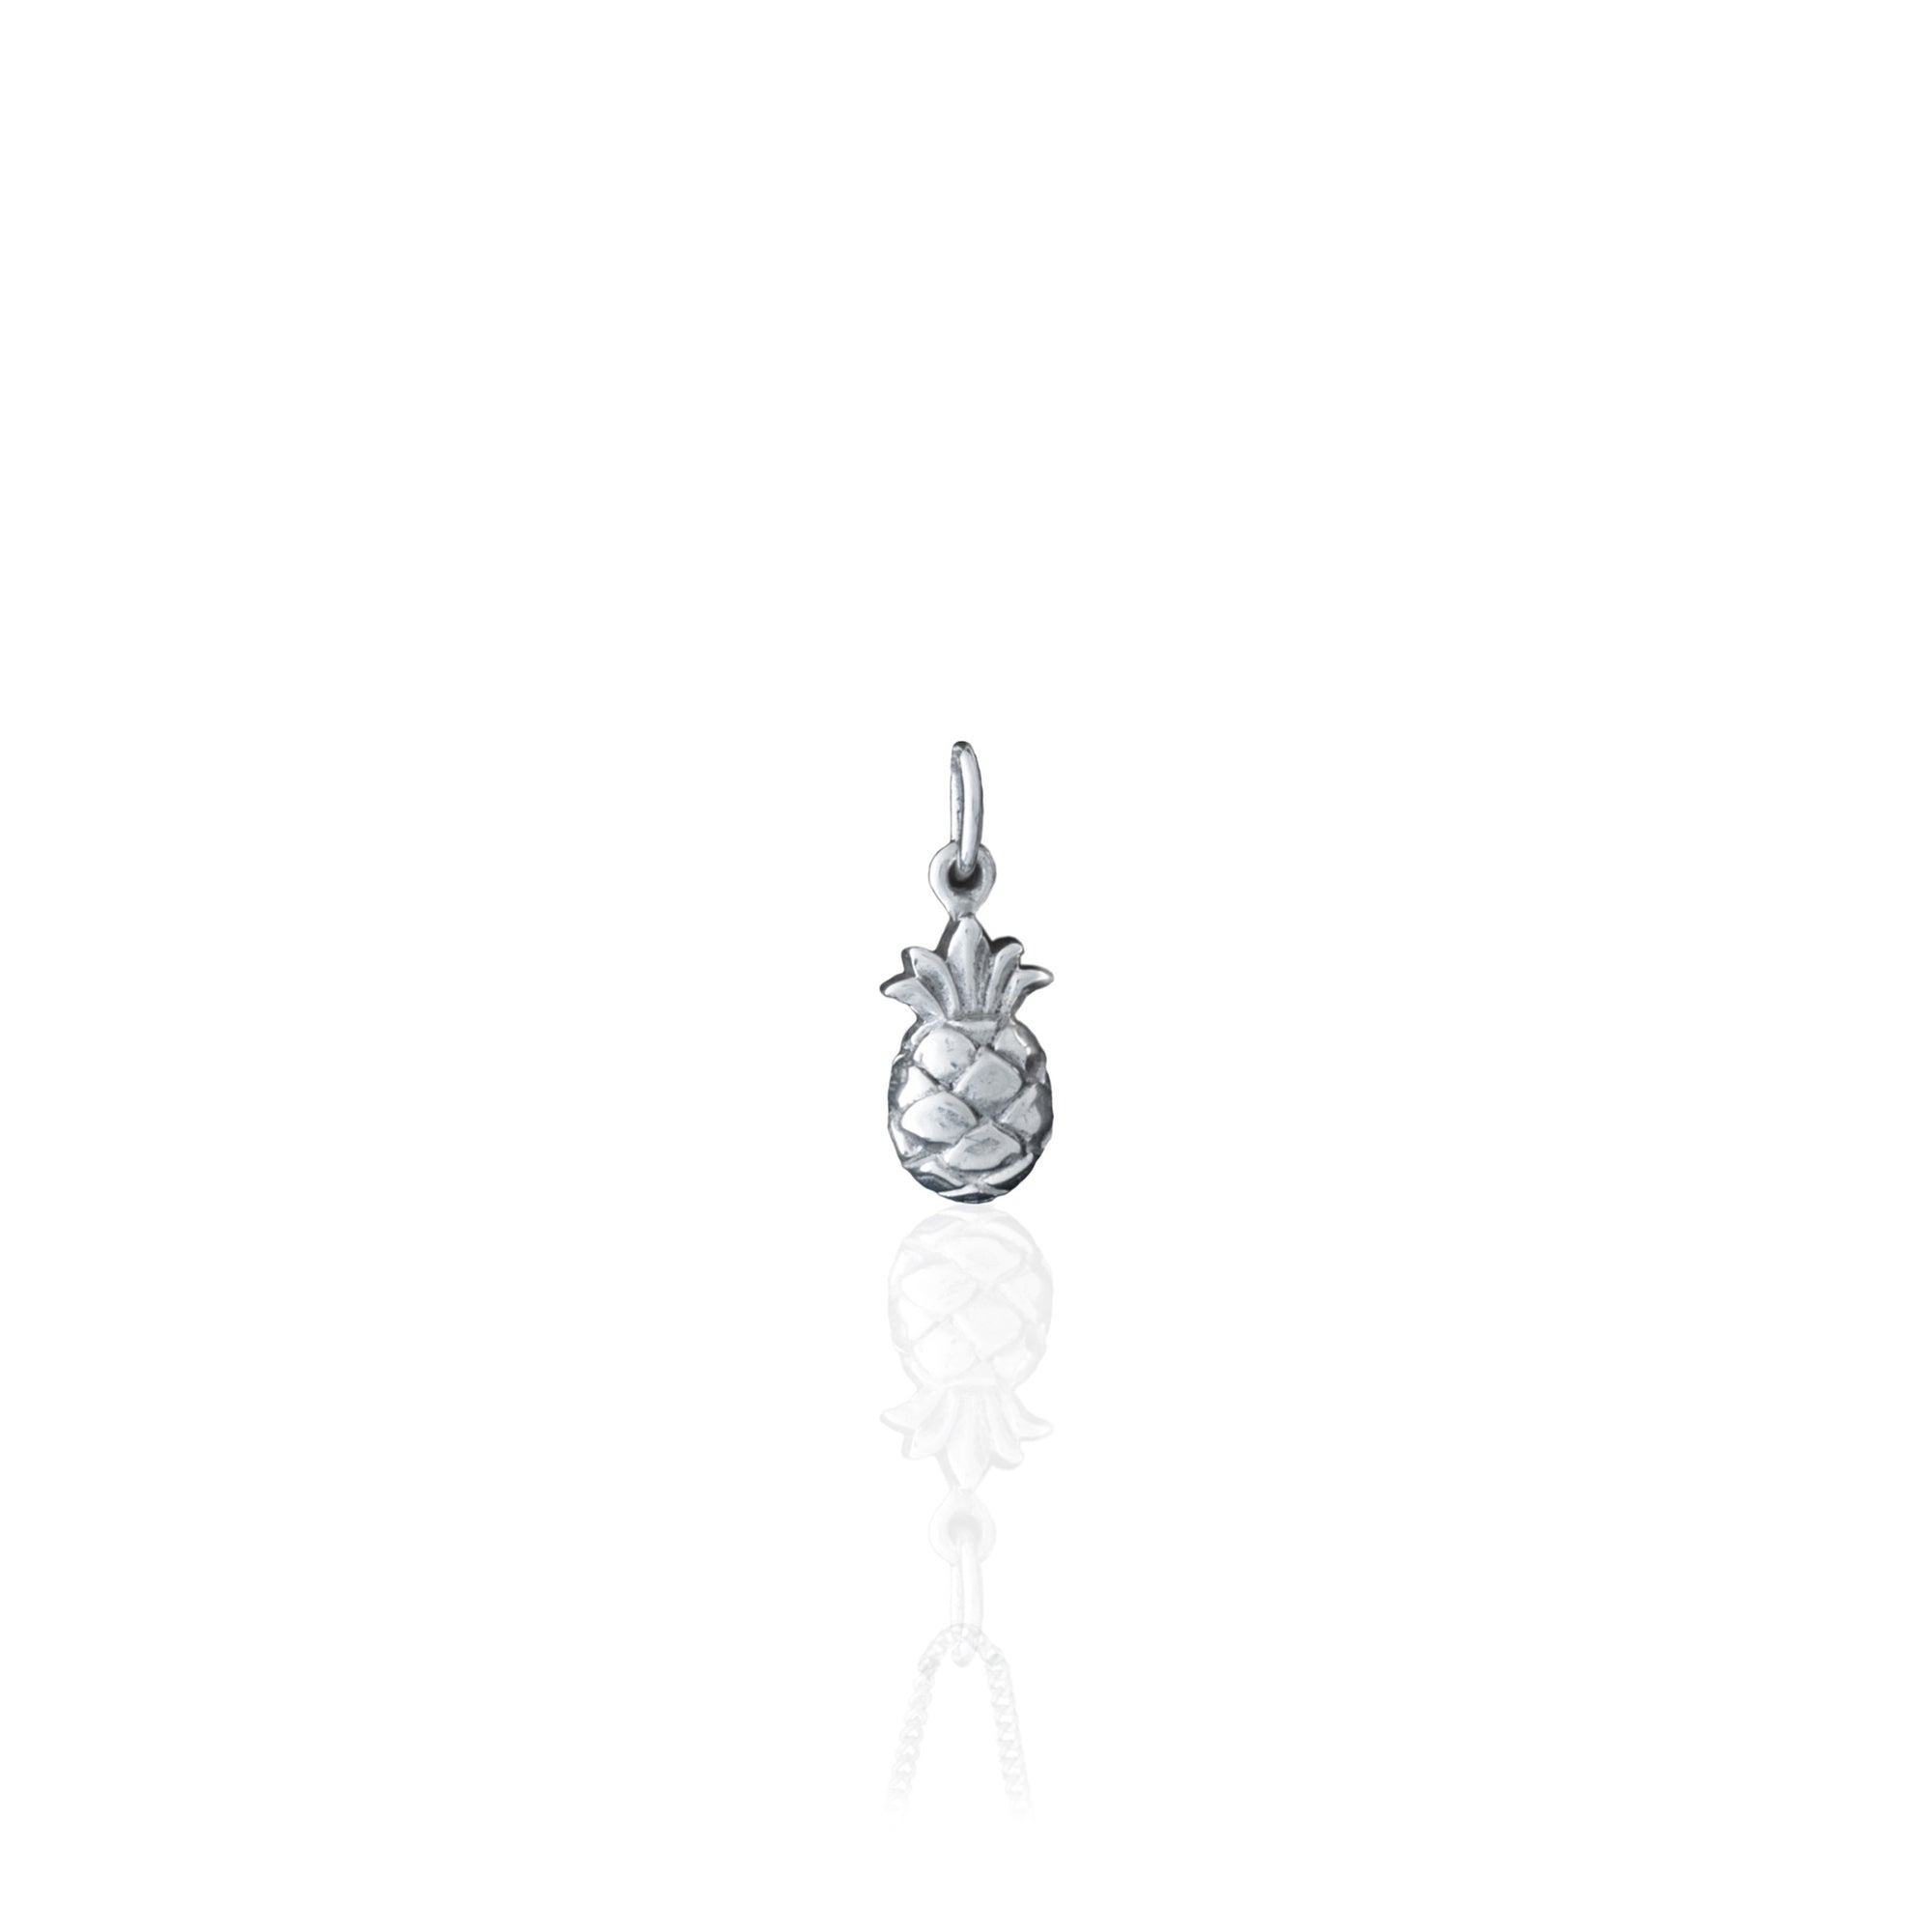 Luna & Rose - Pineapple Charm Silver